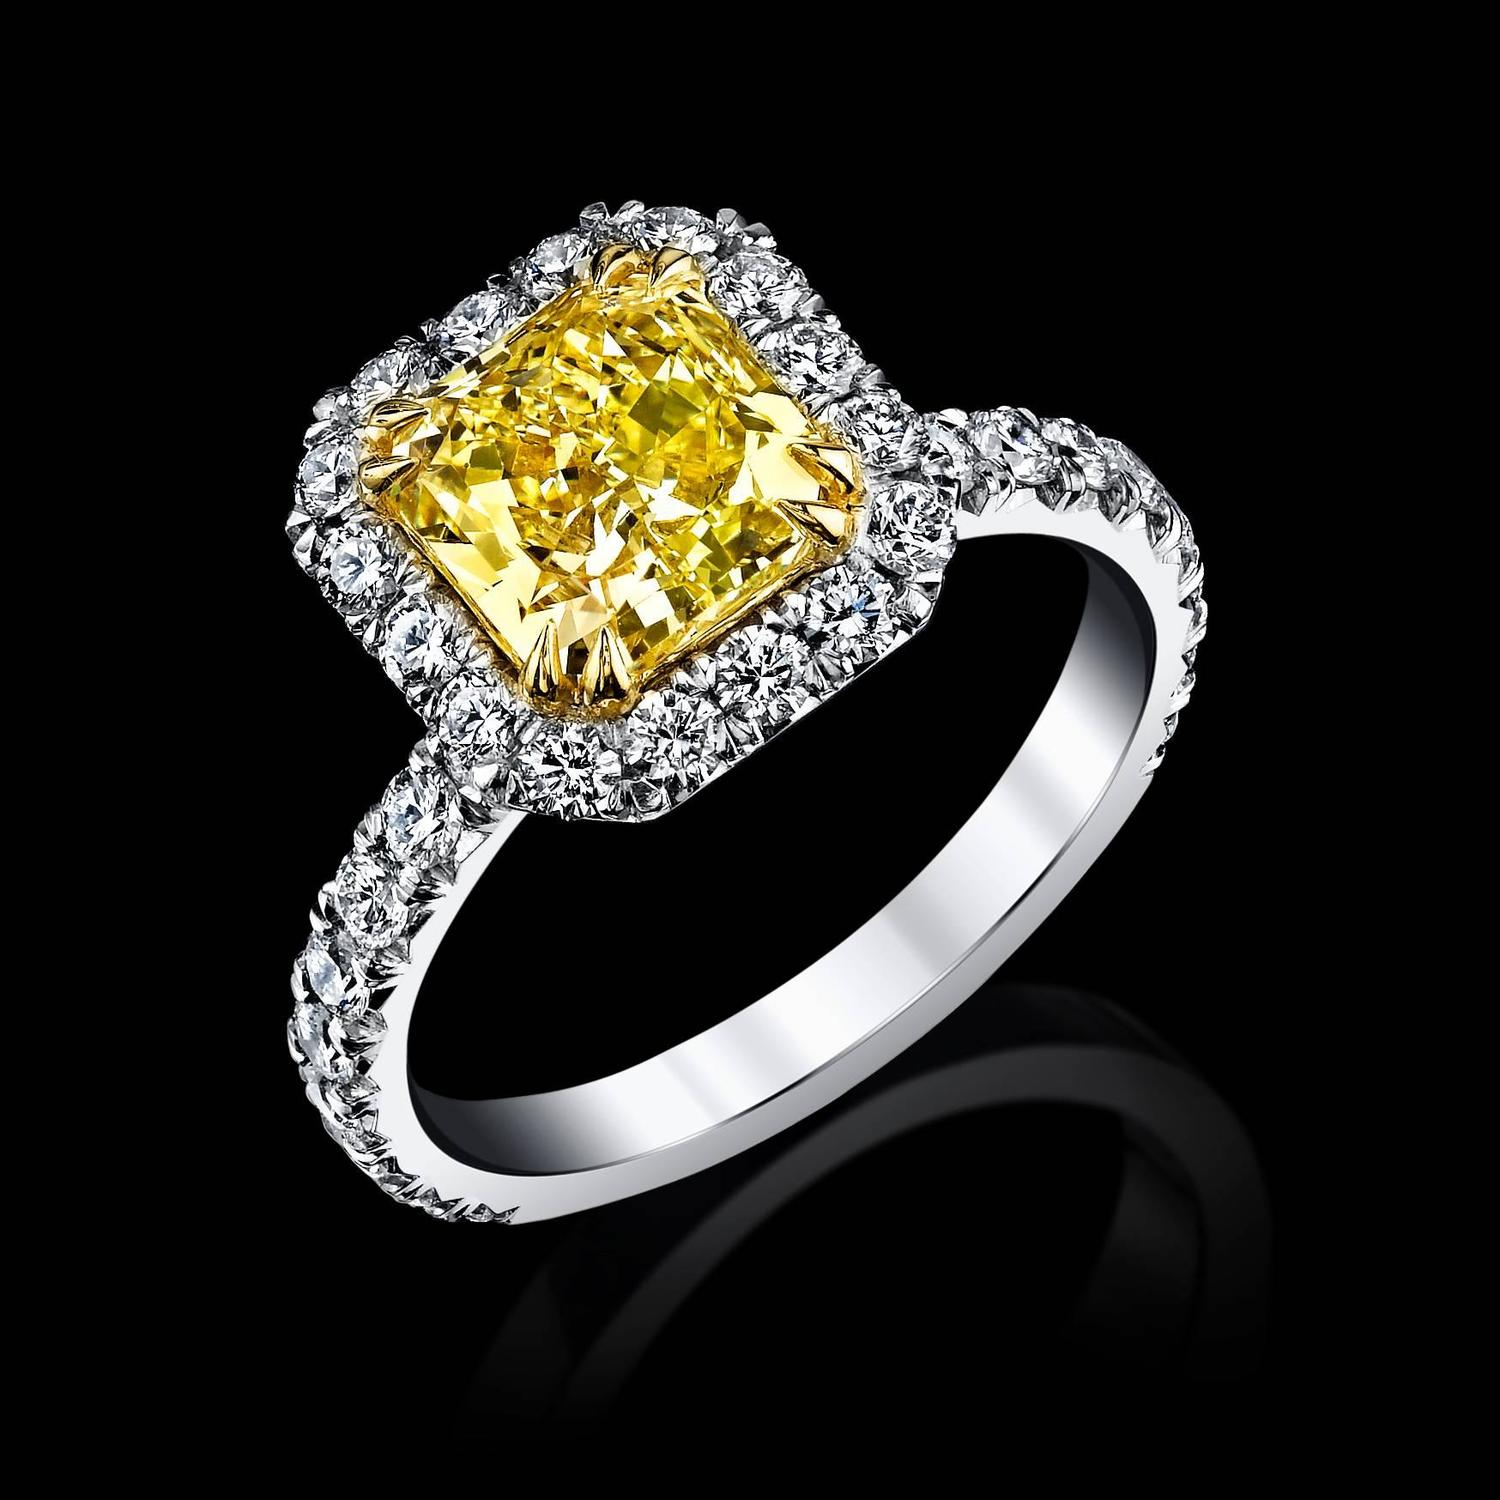 Internally Flawless Radiant Cut Canary Yellow Diamond Gold Engagement Ring Fo